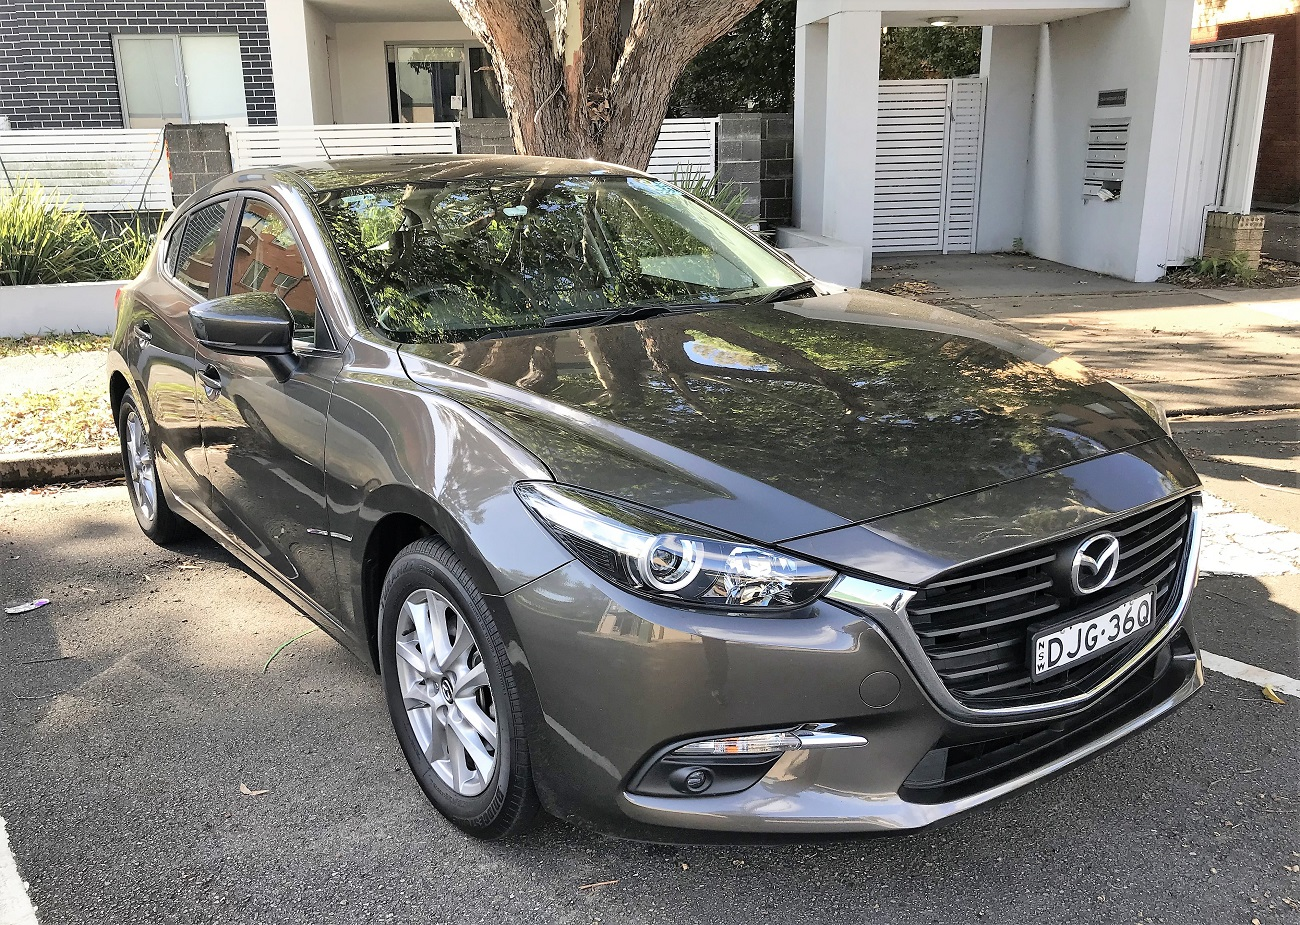 Picture of Faiza's 2016 Mazda 3